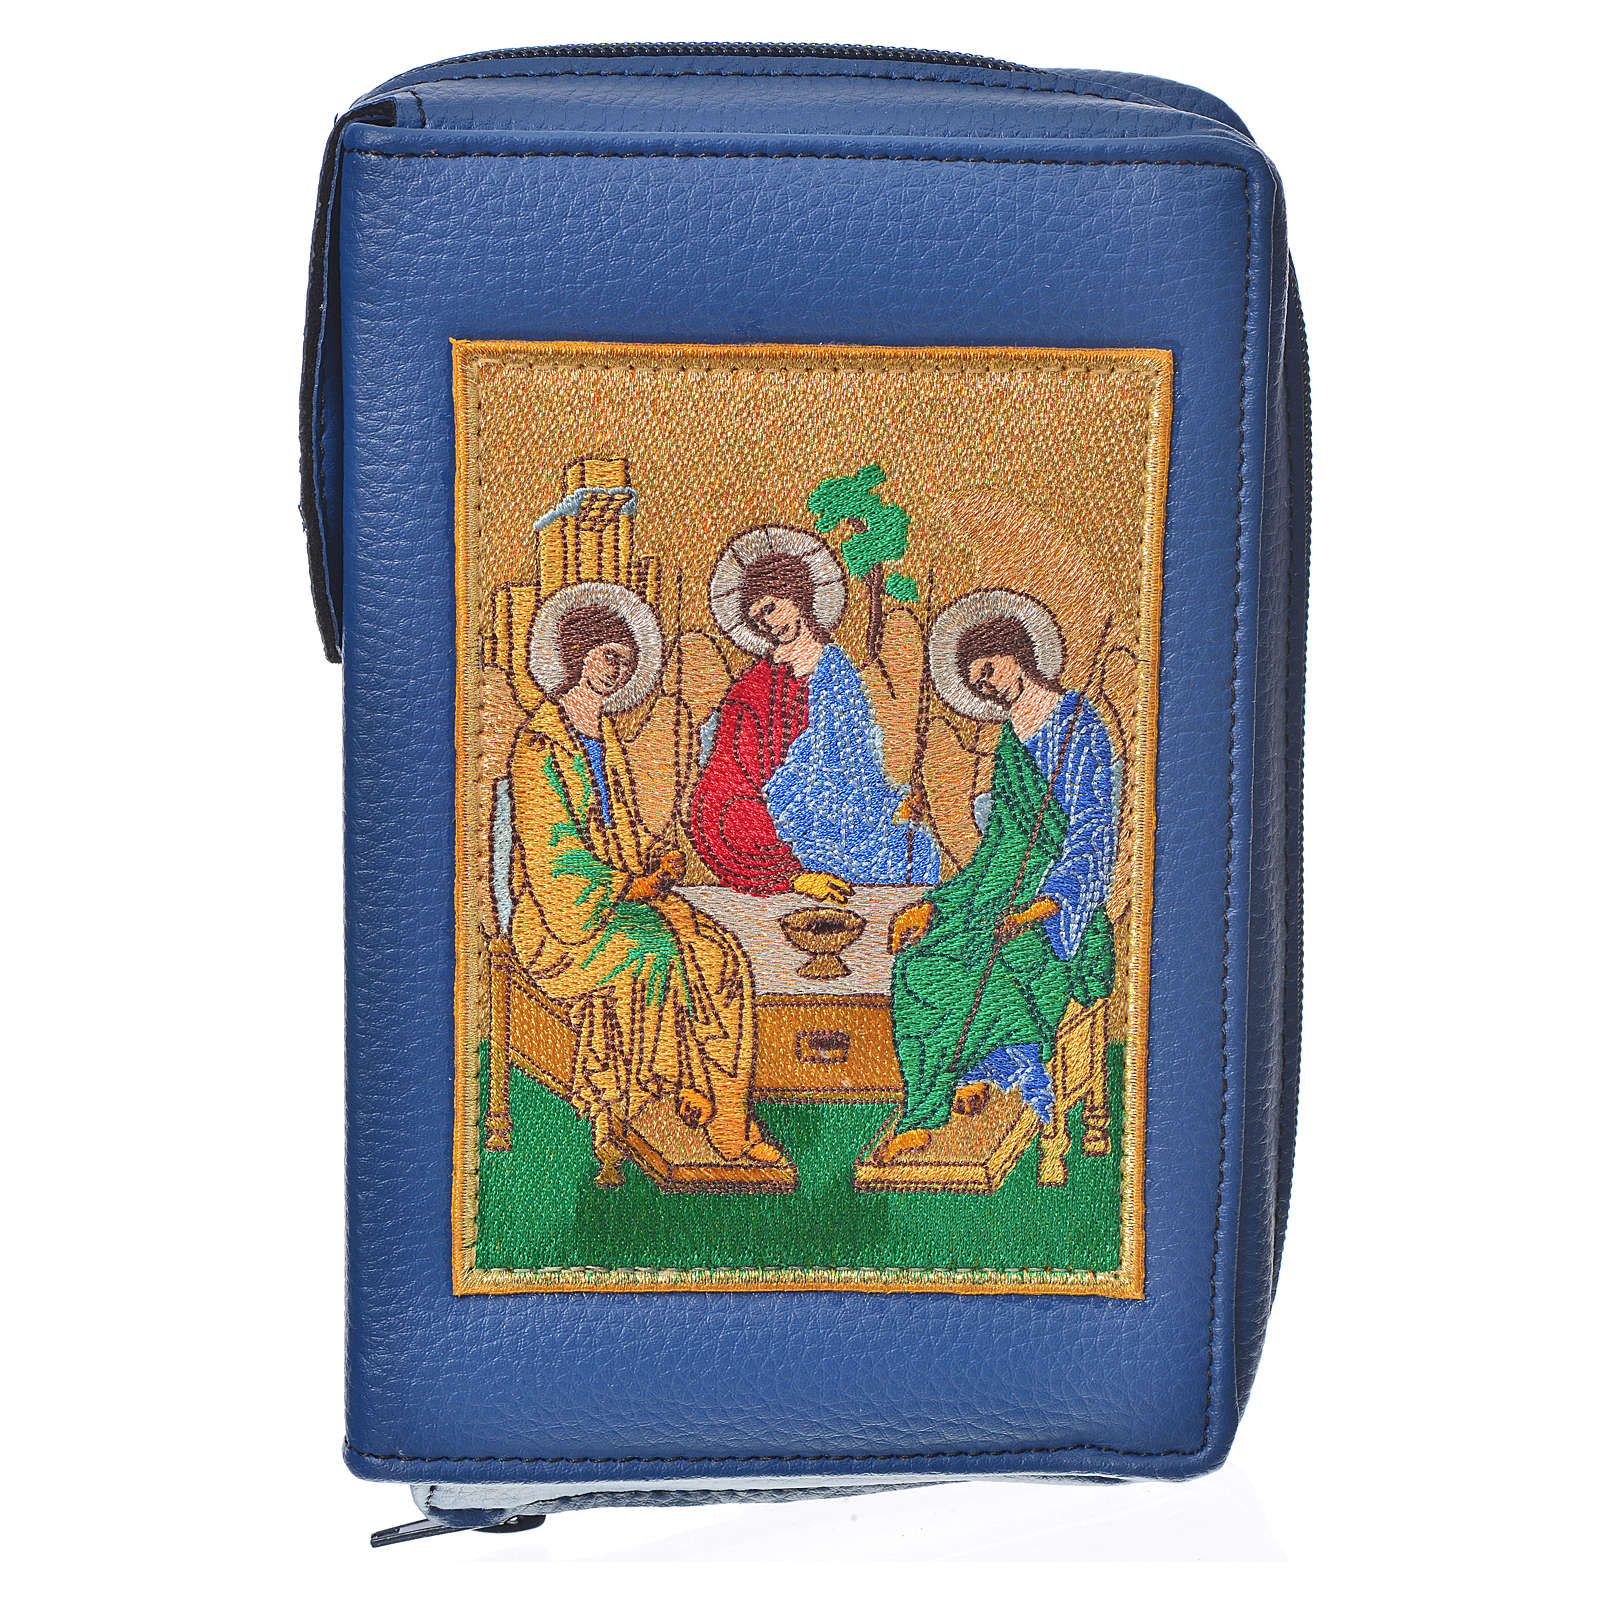 Liturgy of the Hours cover blue bonded leather with Holy Trinity 4